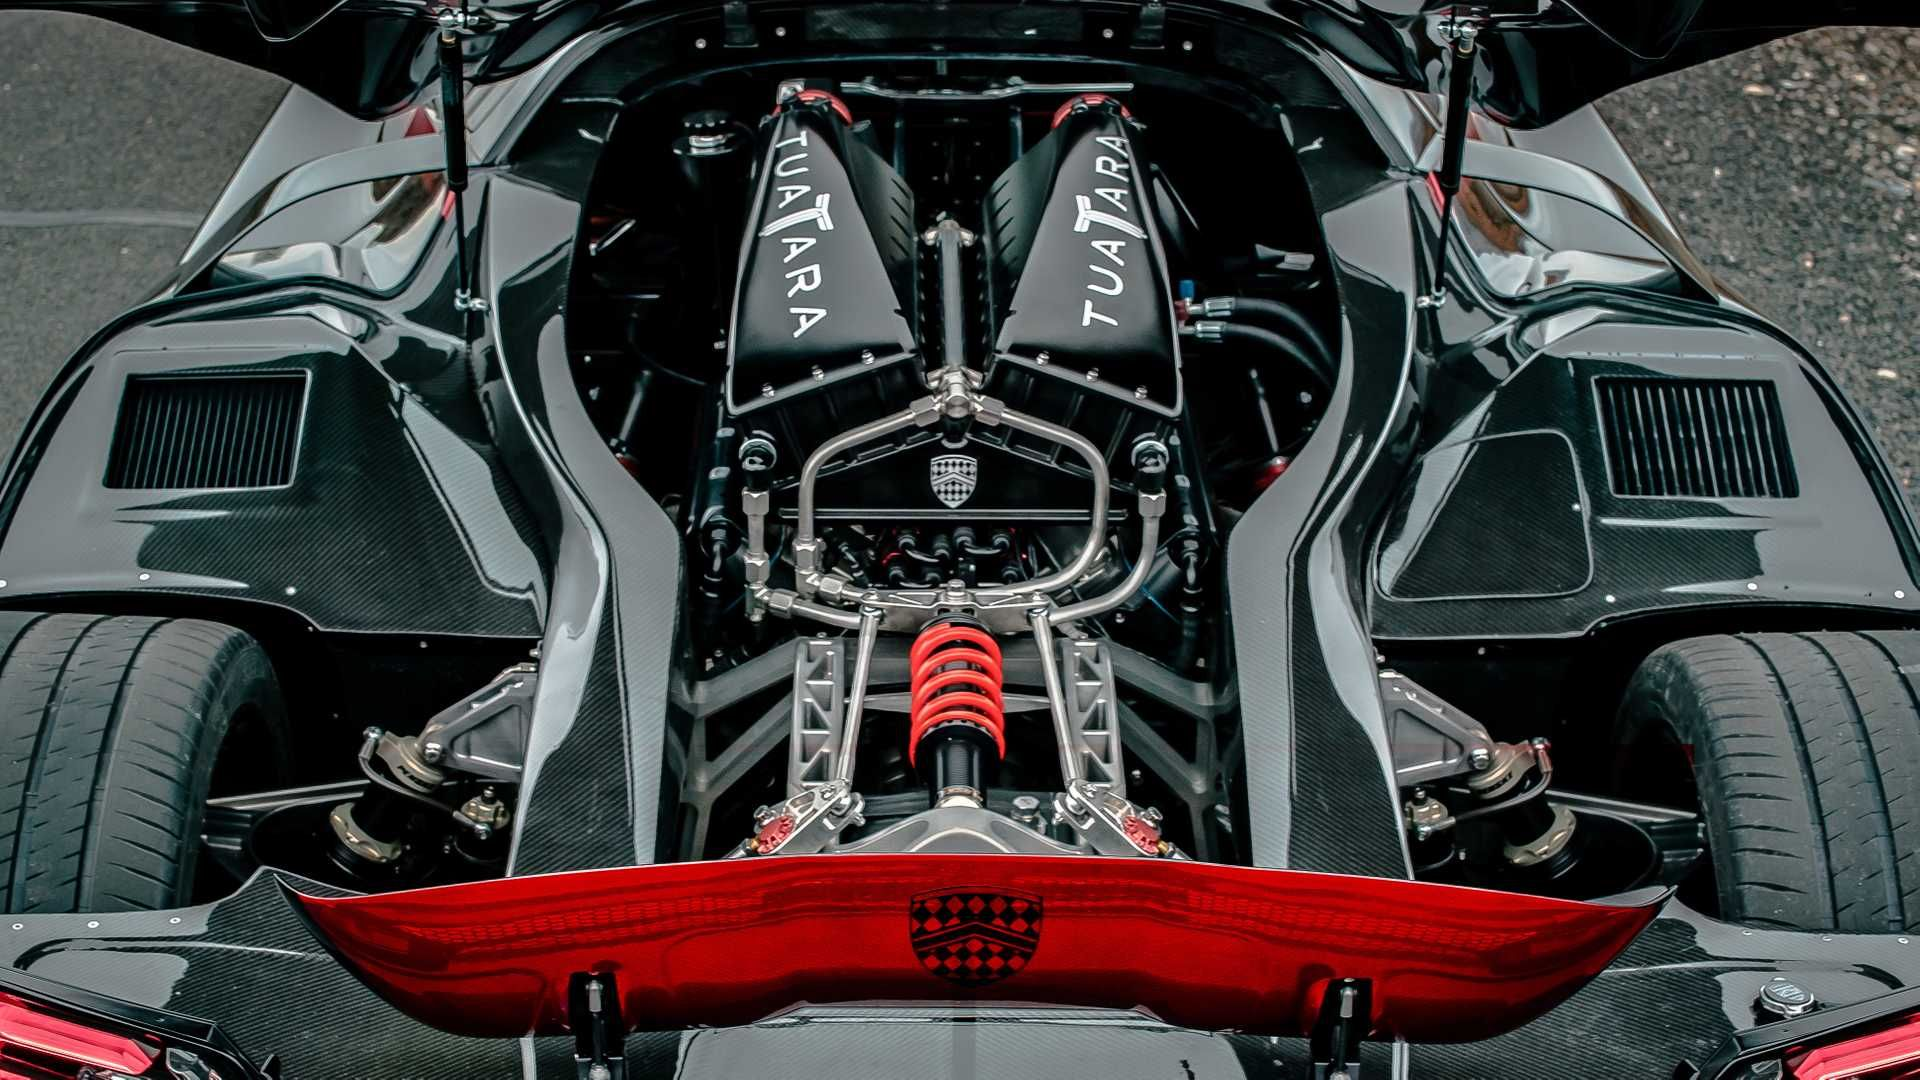 2020 Ssc Tuatara Revealed Is A Hypercar With 1 750 Horsepower And 300mph Top Speed Techeblog In 2020 Super Cars Tuatara Fastest Production Cars